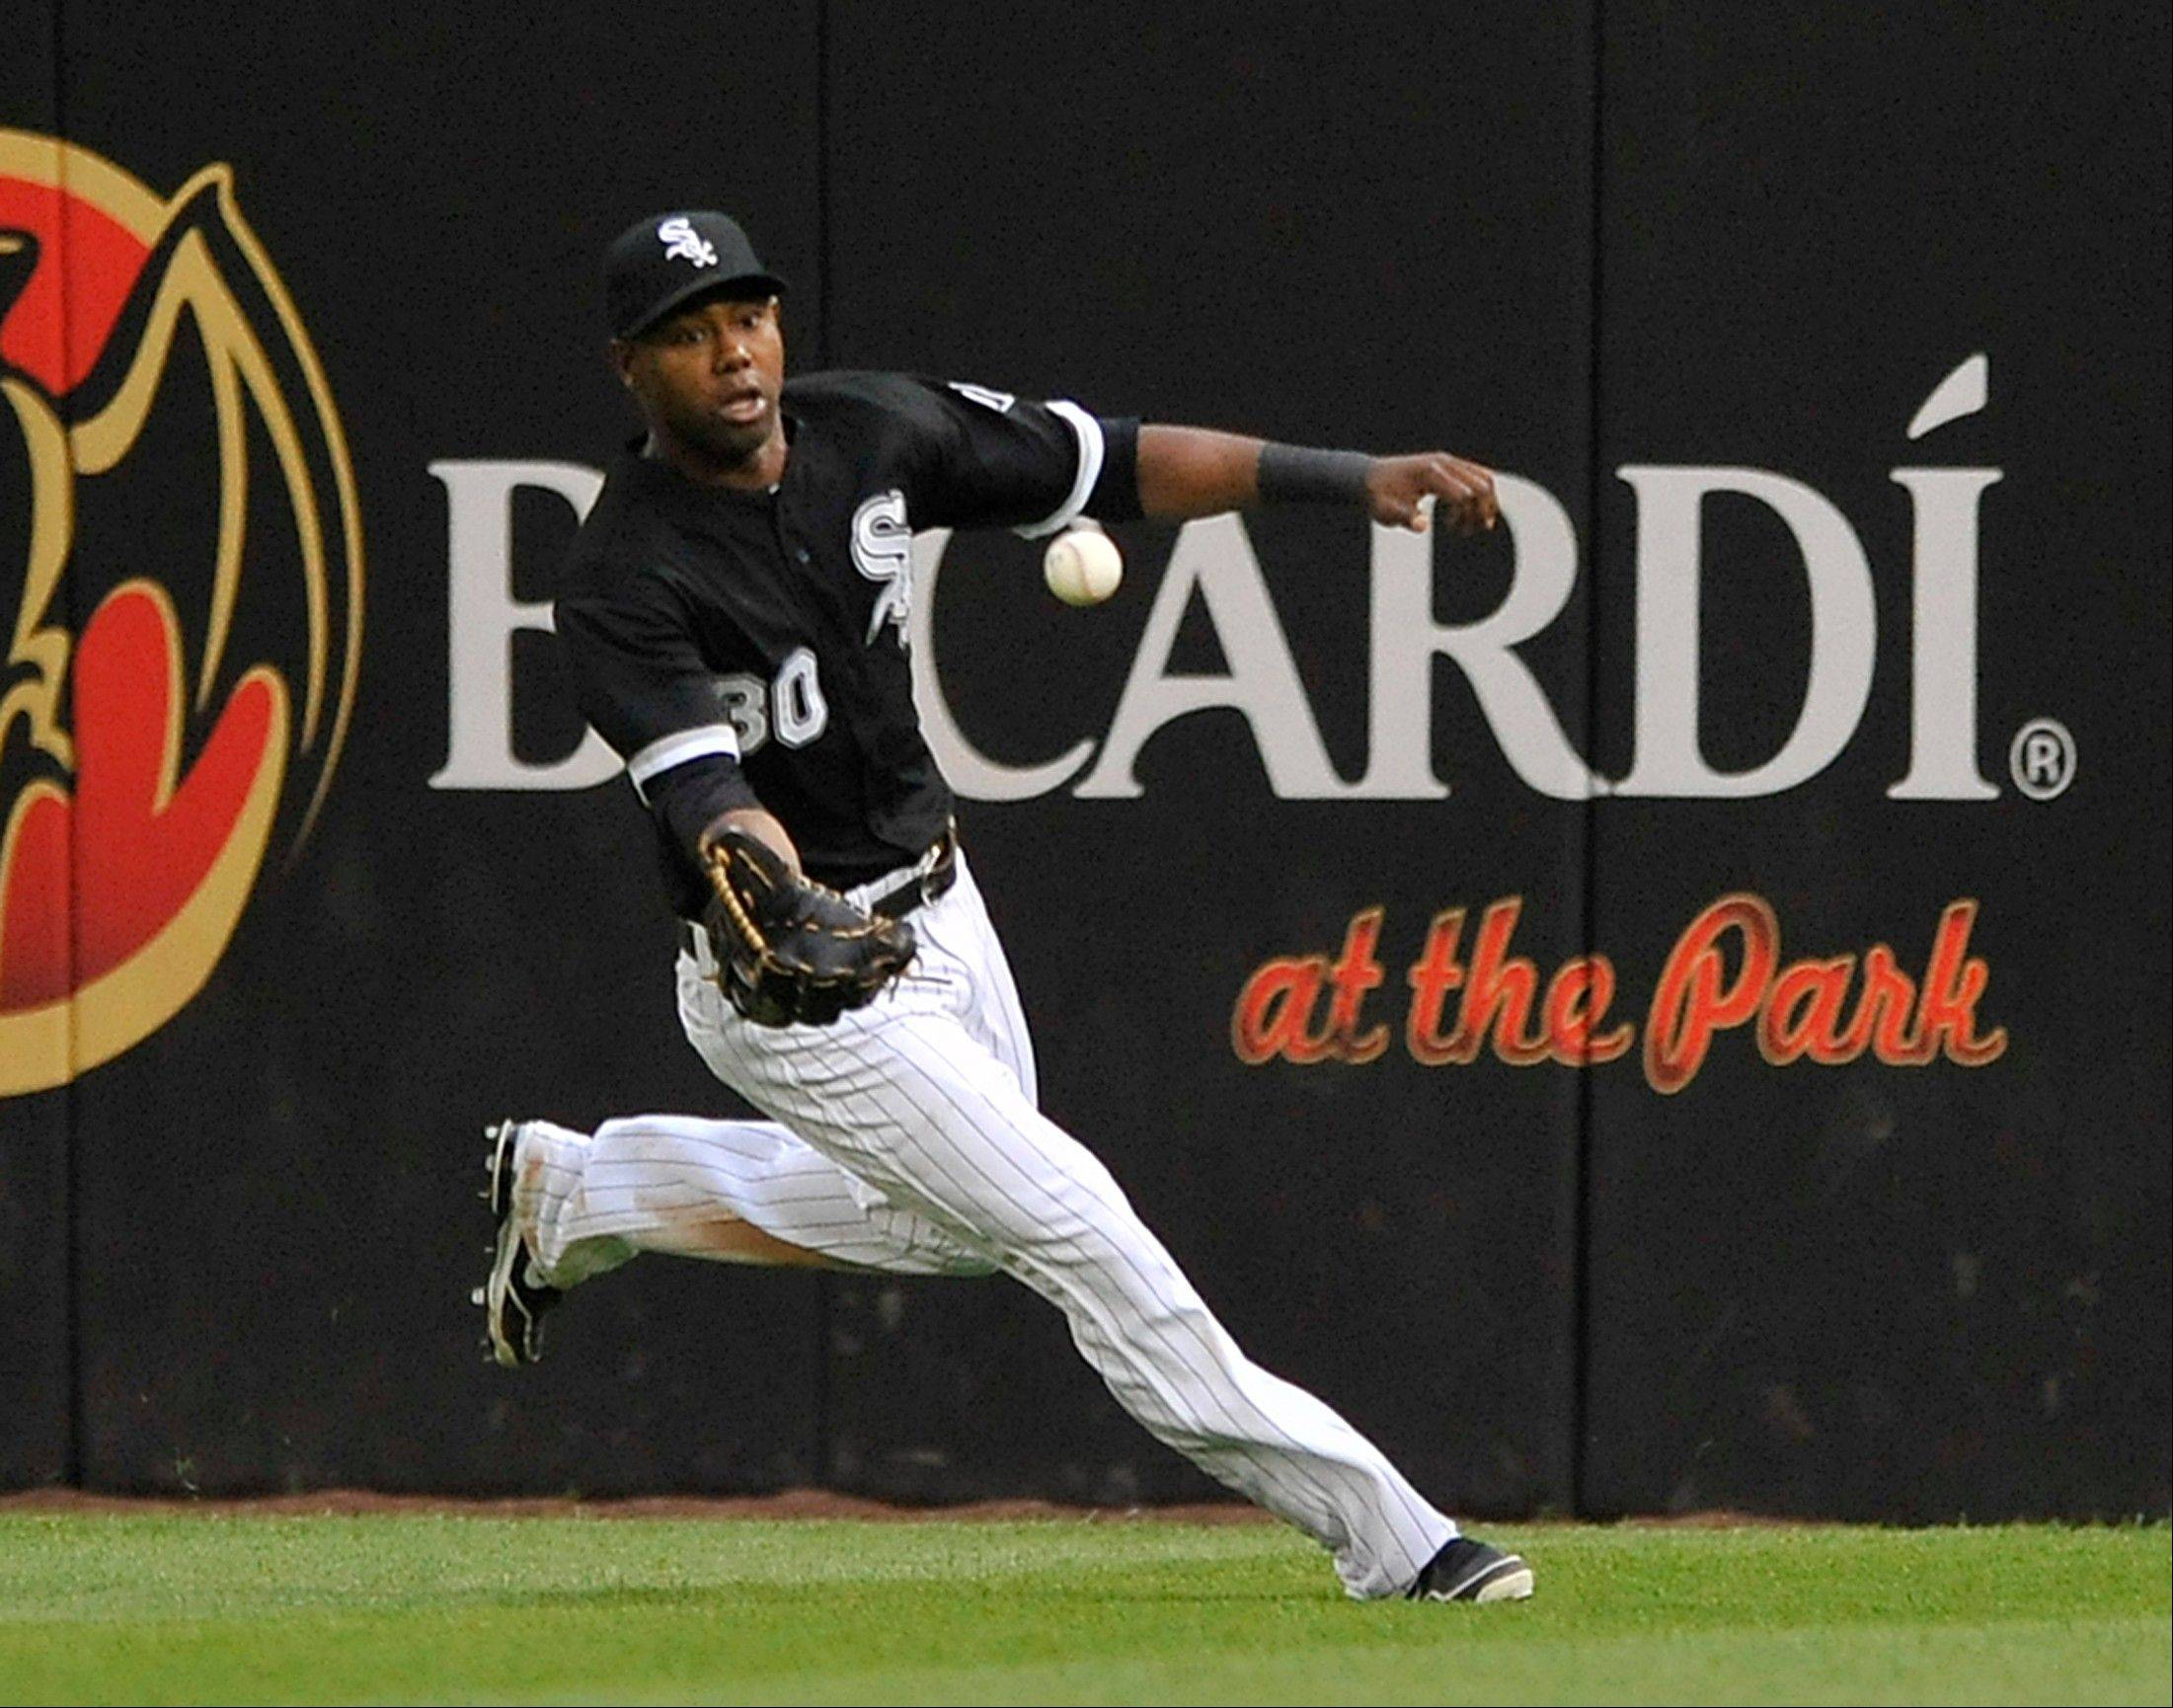 White Sox center fielder Alejandro De Aza chases down a double hit by Cleveland Indians' Jason Kipnis during the eighth inning of the first game of a doubleheader baseball game in Chicago, Friday, June 28, 2013. Cleveland won 19-10.